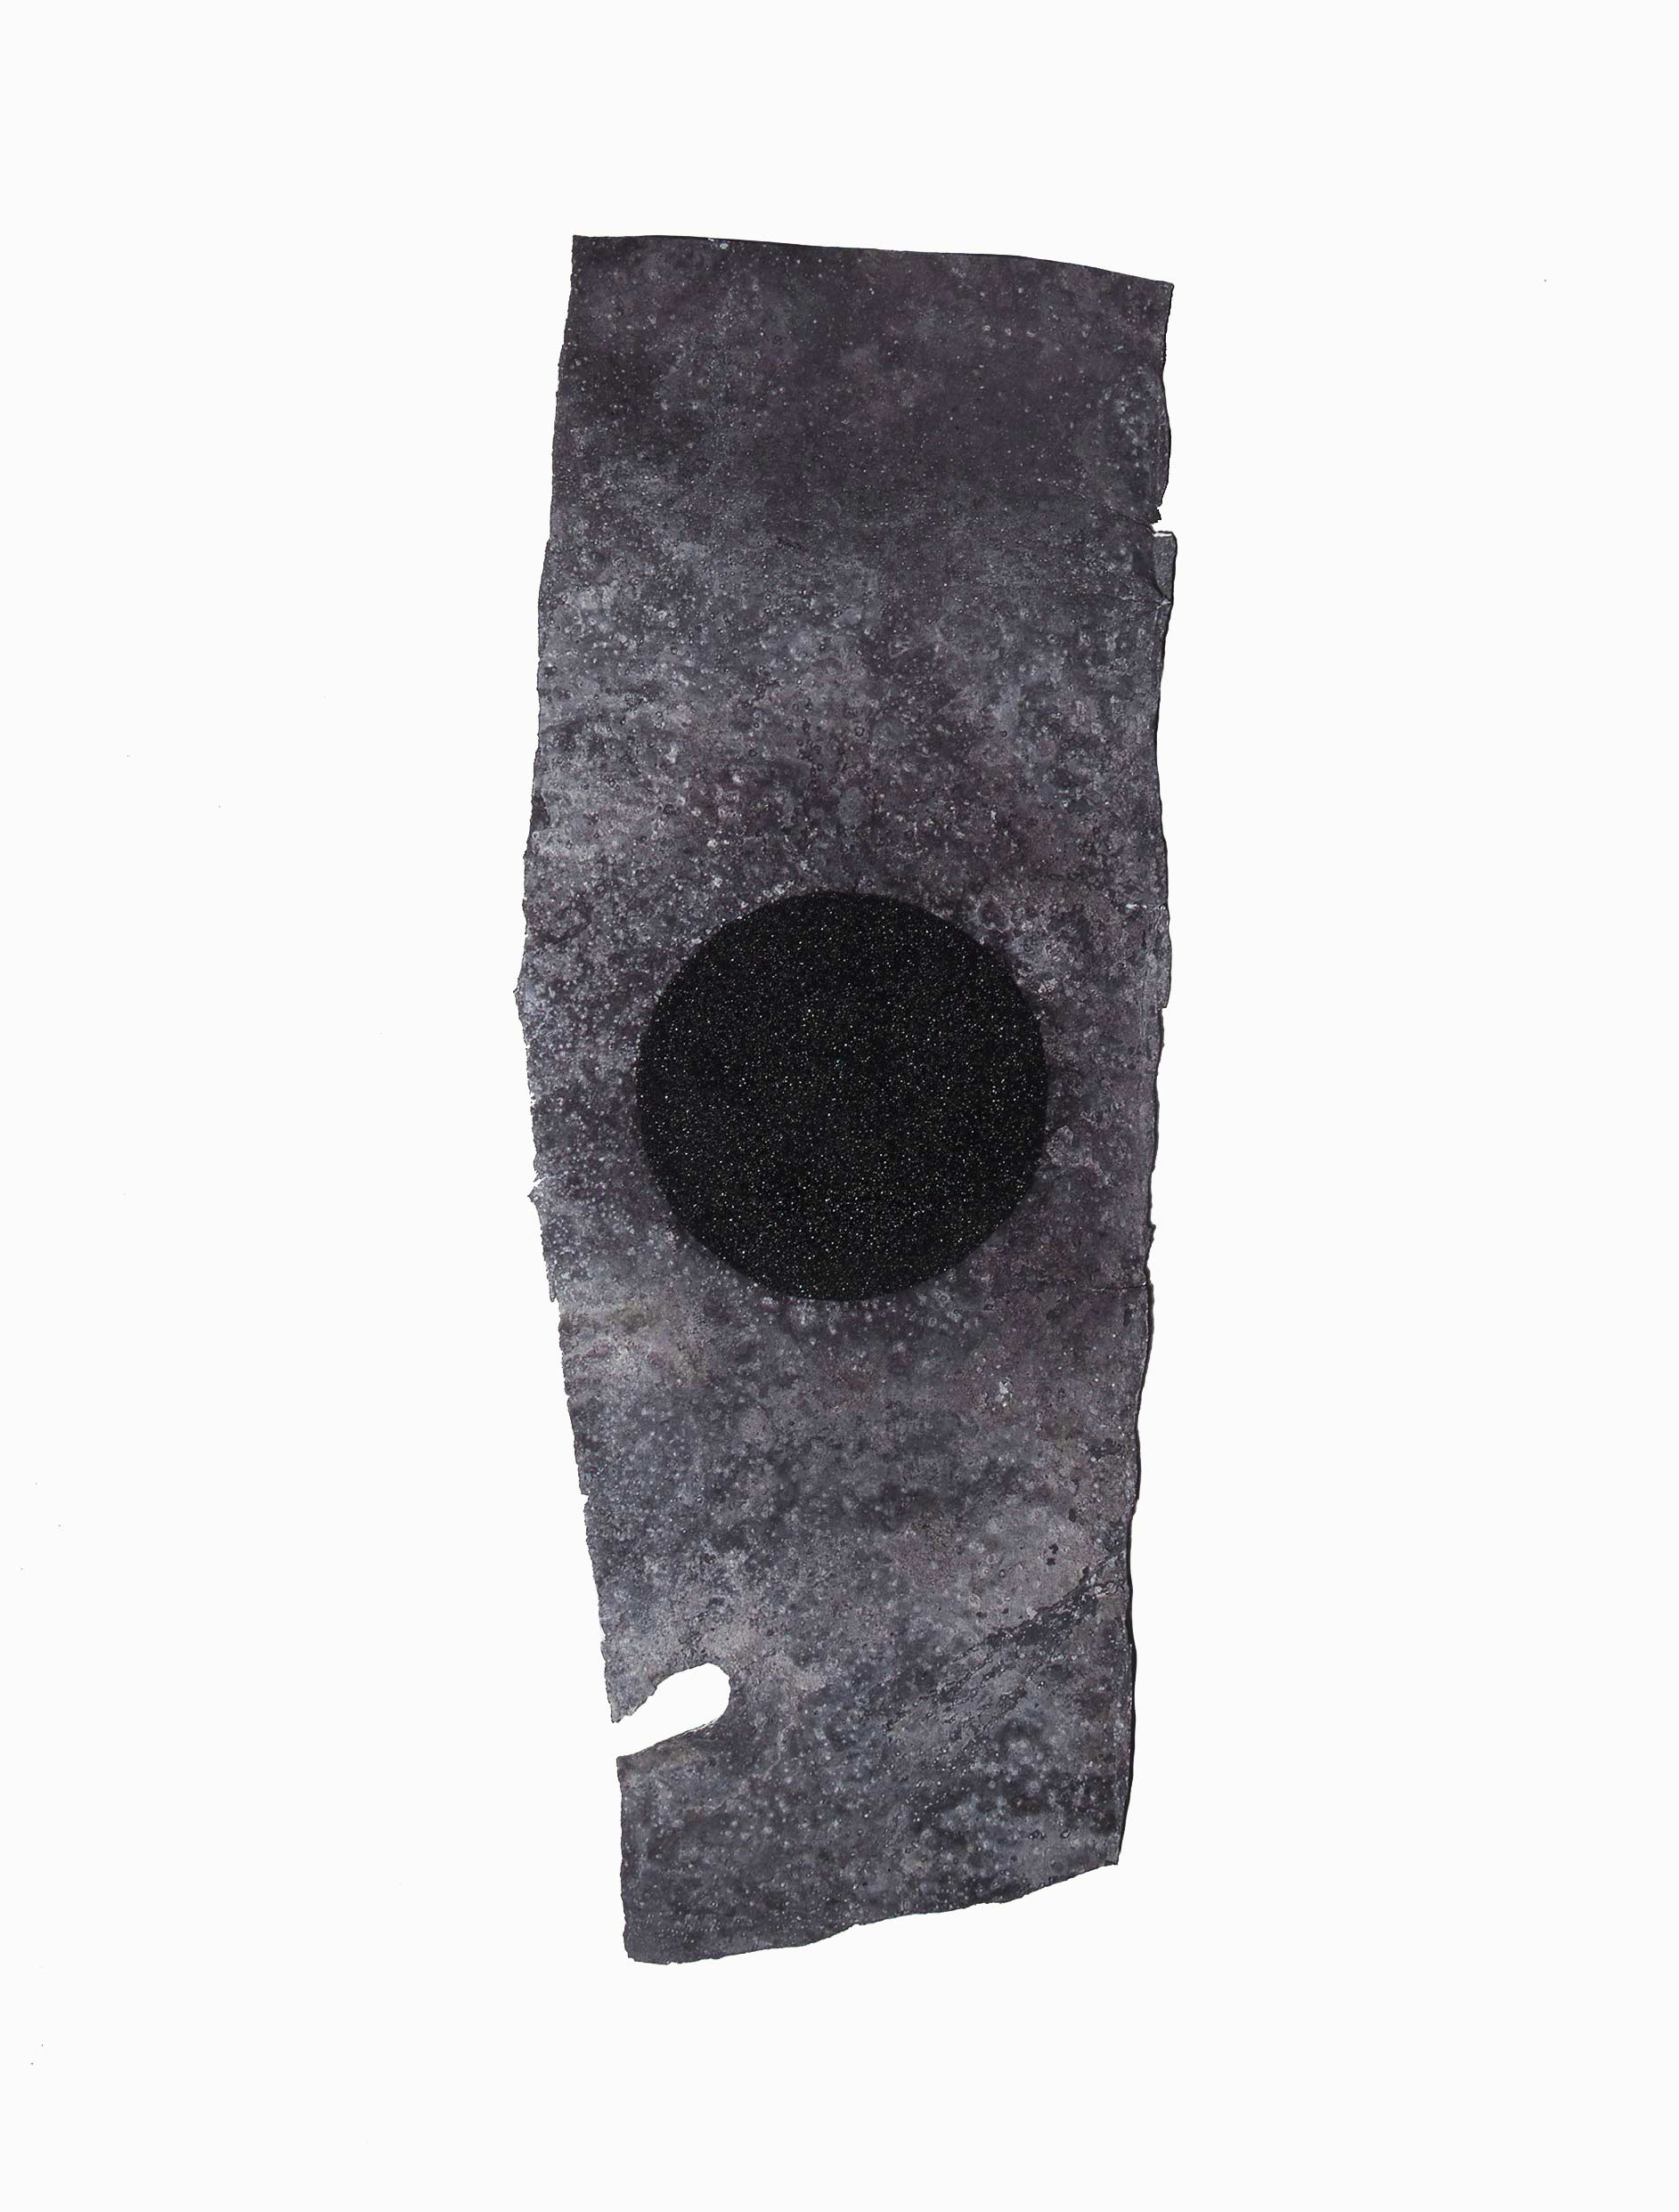 ZINC AND STARS  1997  carbon and oxidised zinc  33.0 x 8.1 cm   (private collection UK)